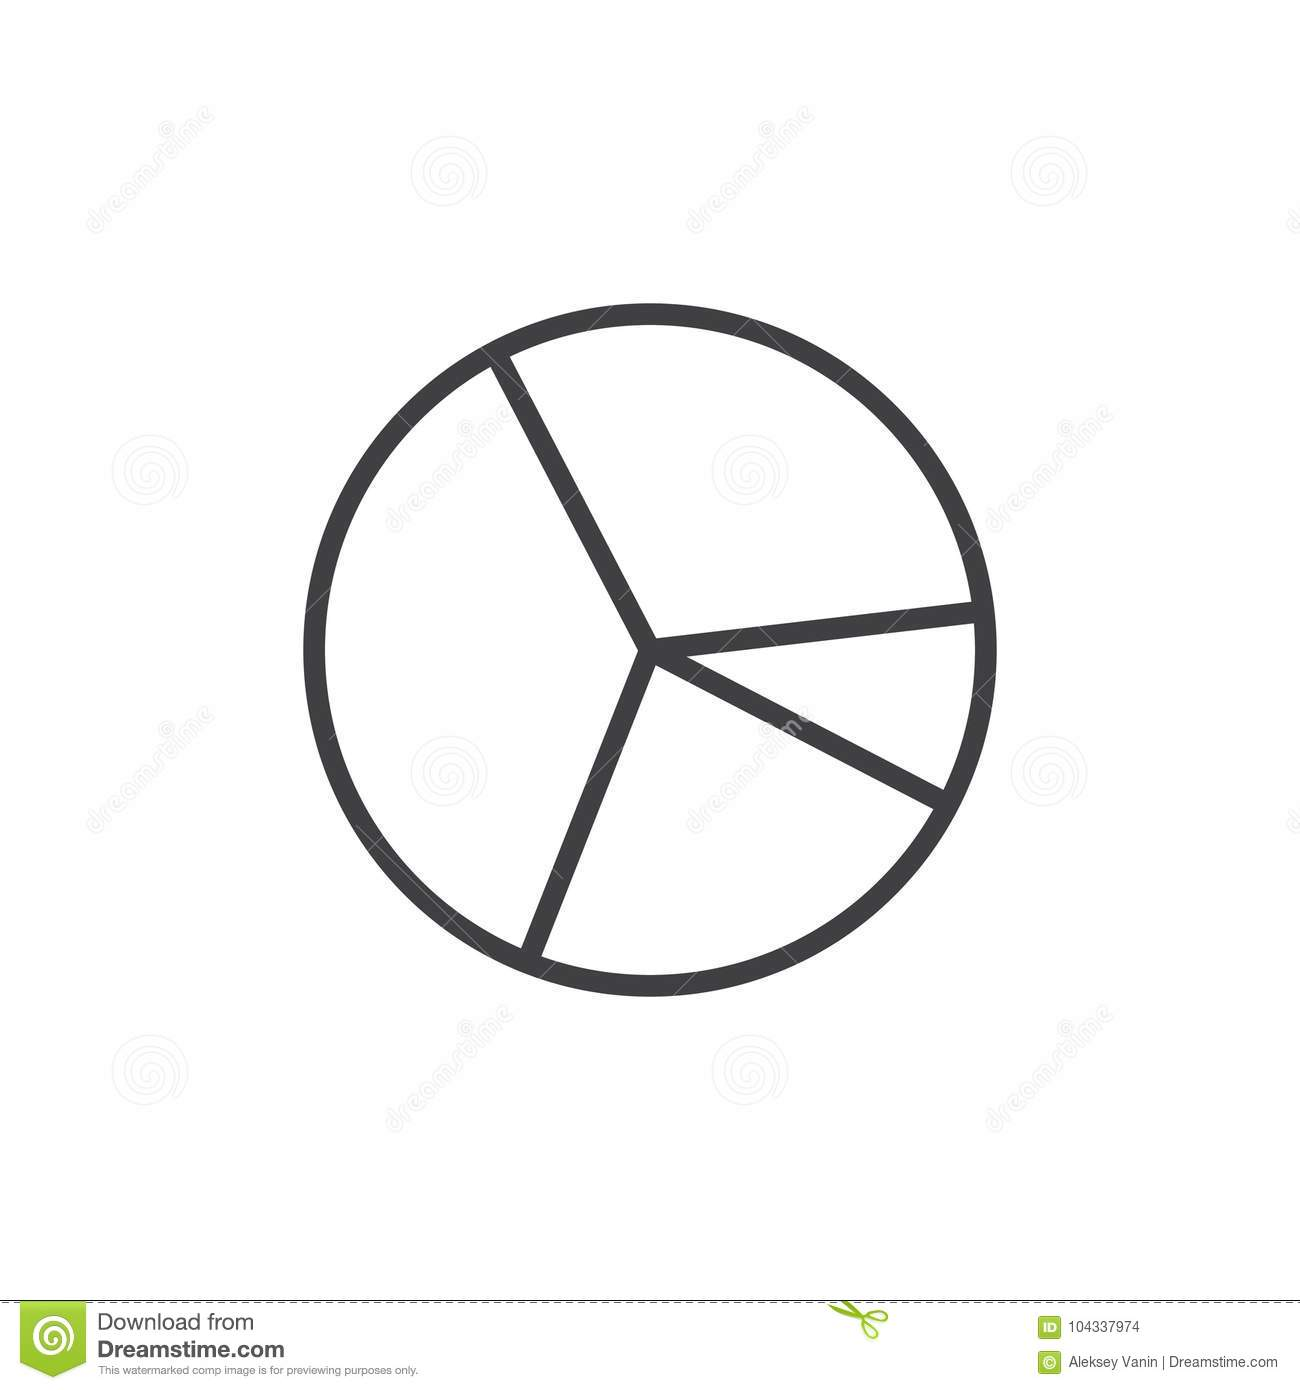 Pie chart line icon stock vector illustration of chart 104337974 pie chart line icon ccuart Image collections